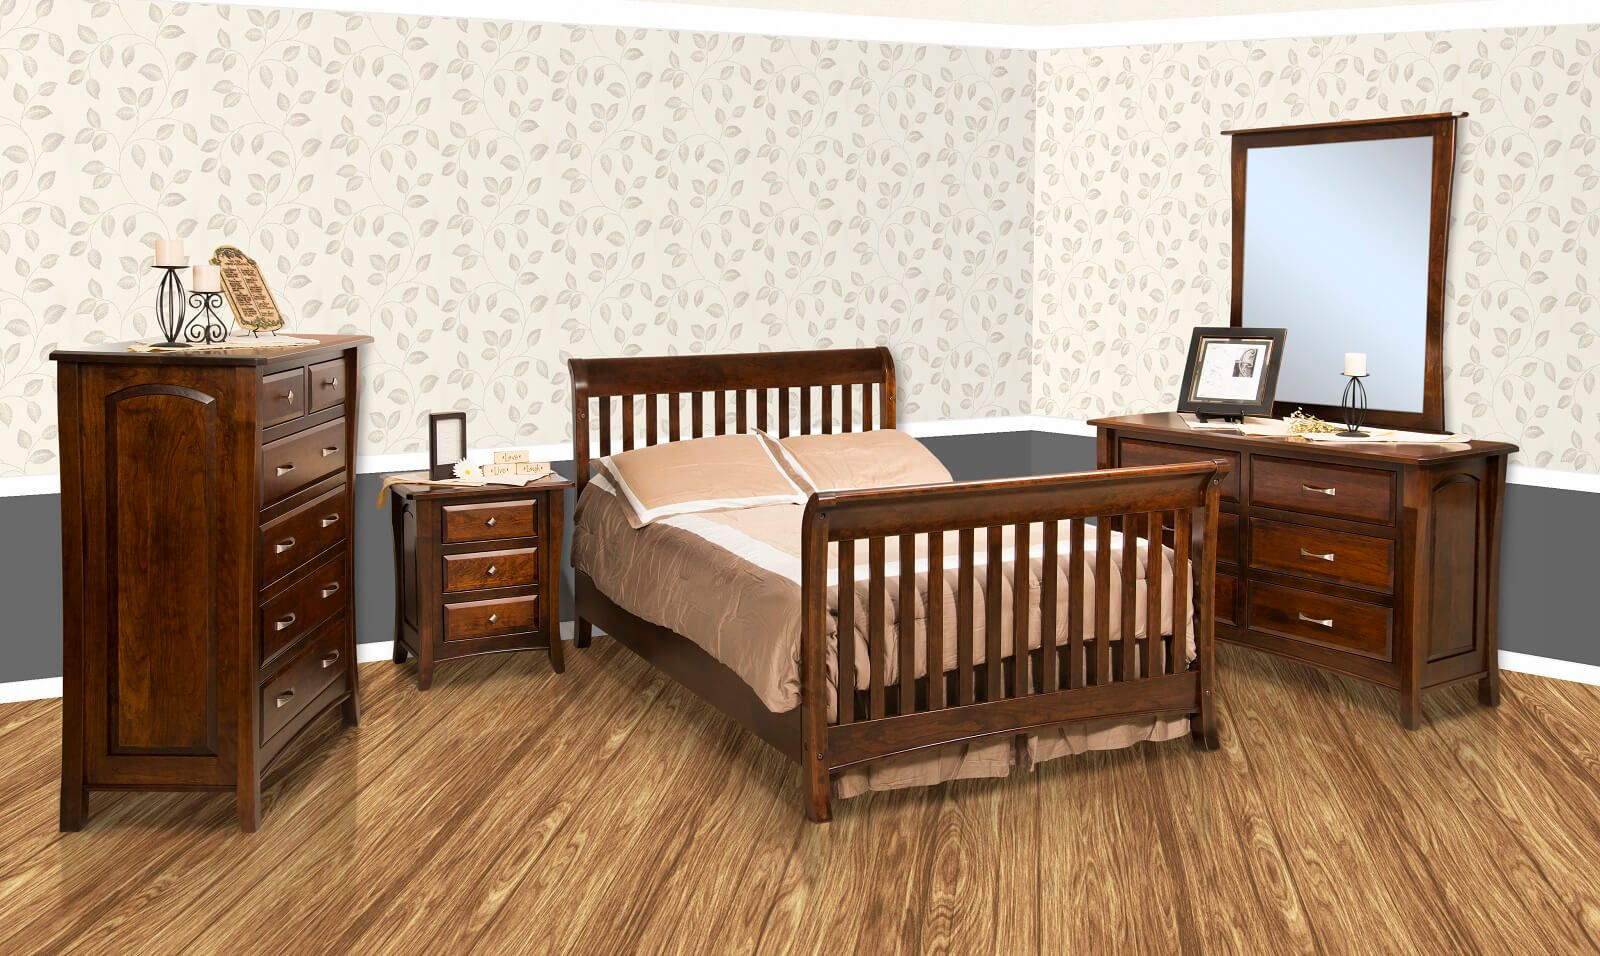 Luxembourg Bedroom Furniture Set